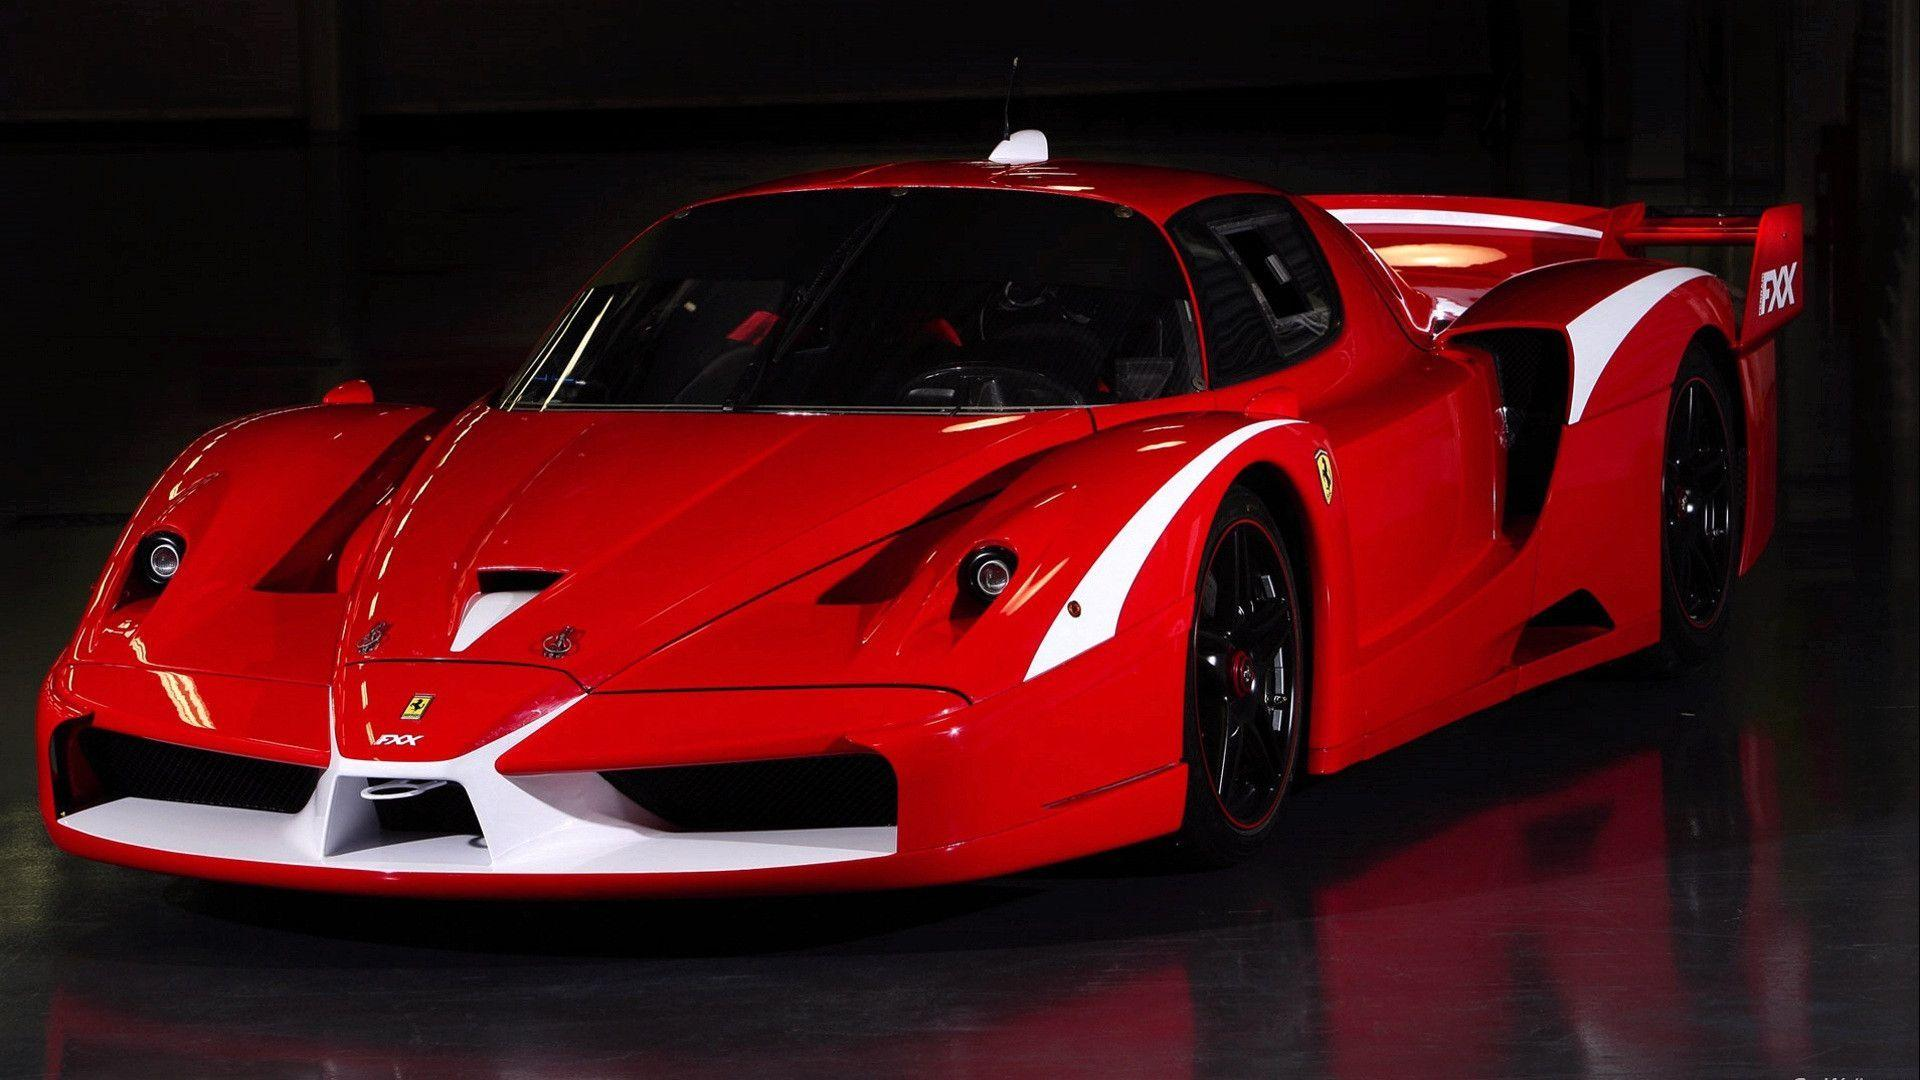 Wallpapers ferrari animaatjes 9 Wallpapers